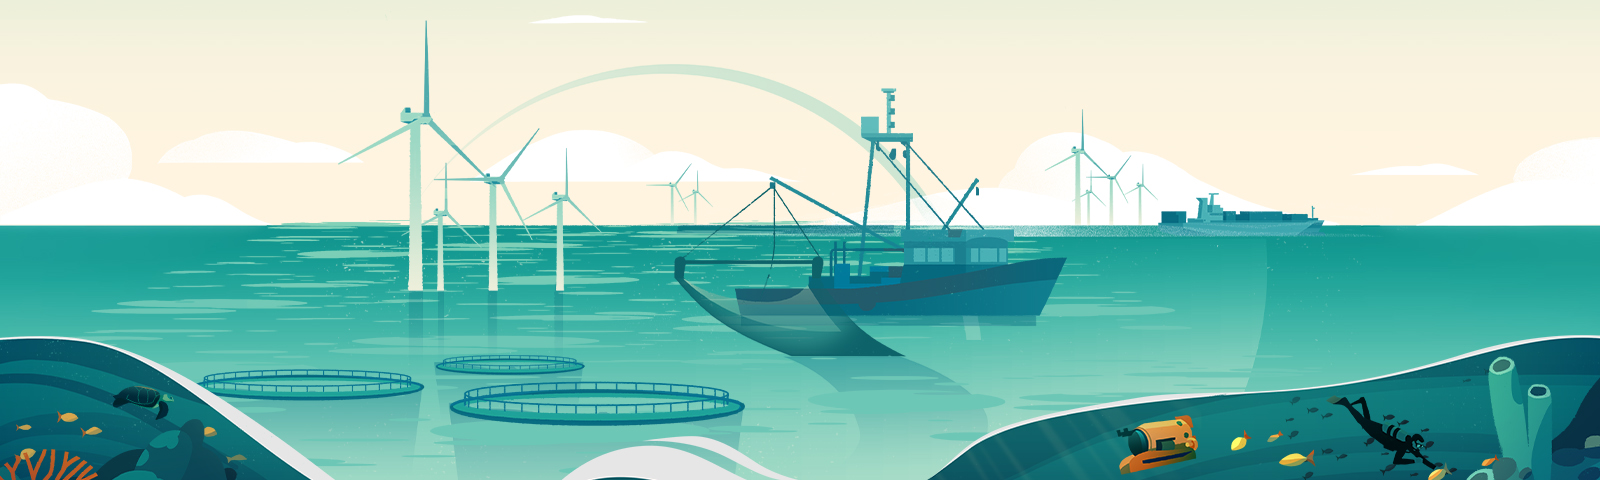 Accelerating Energy Innovation for the Blue Economy